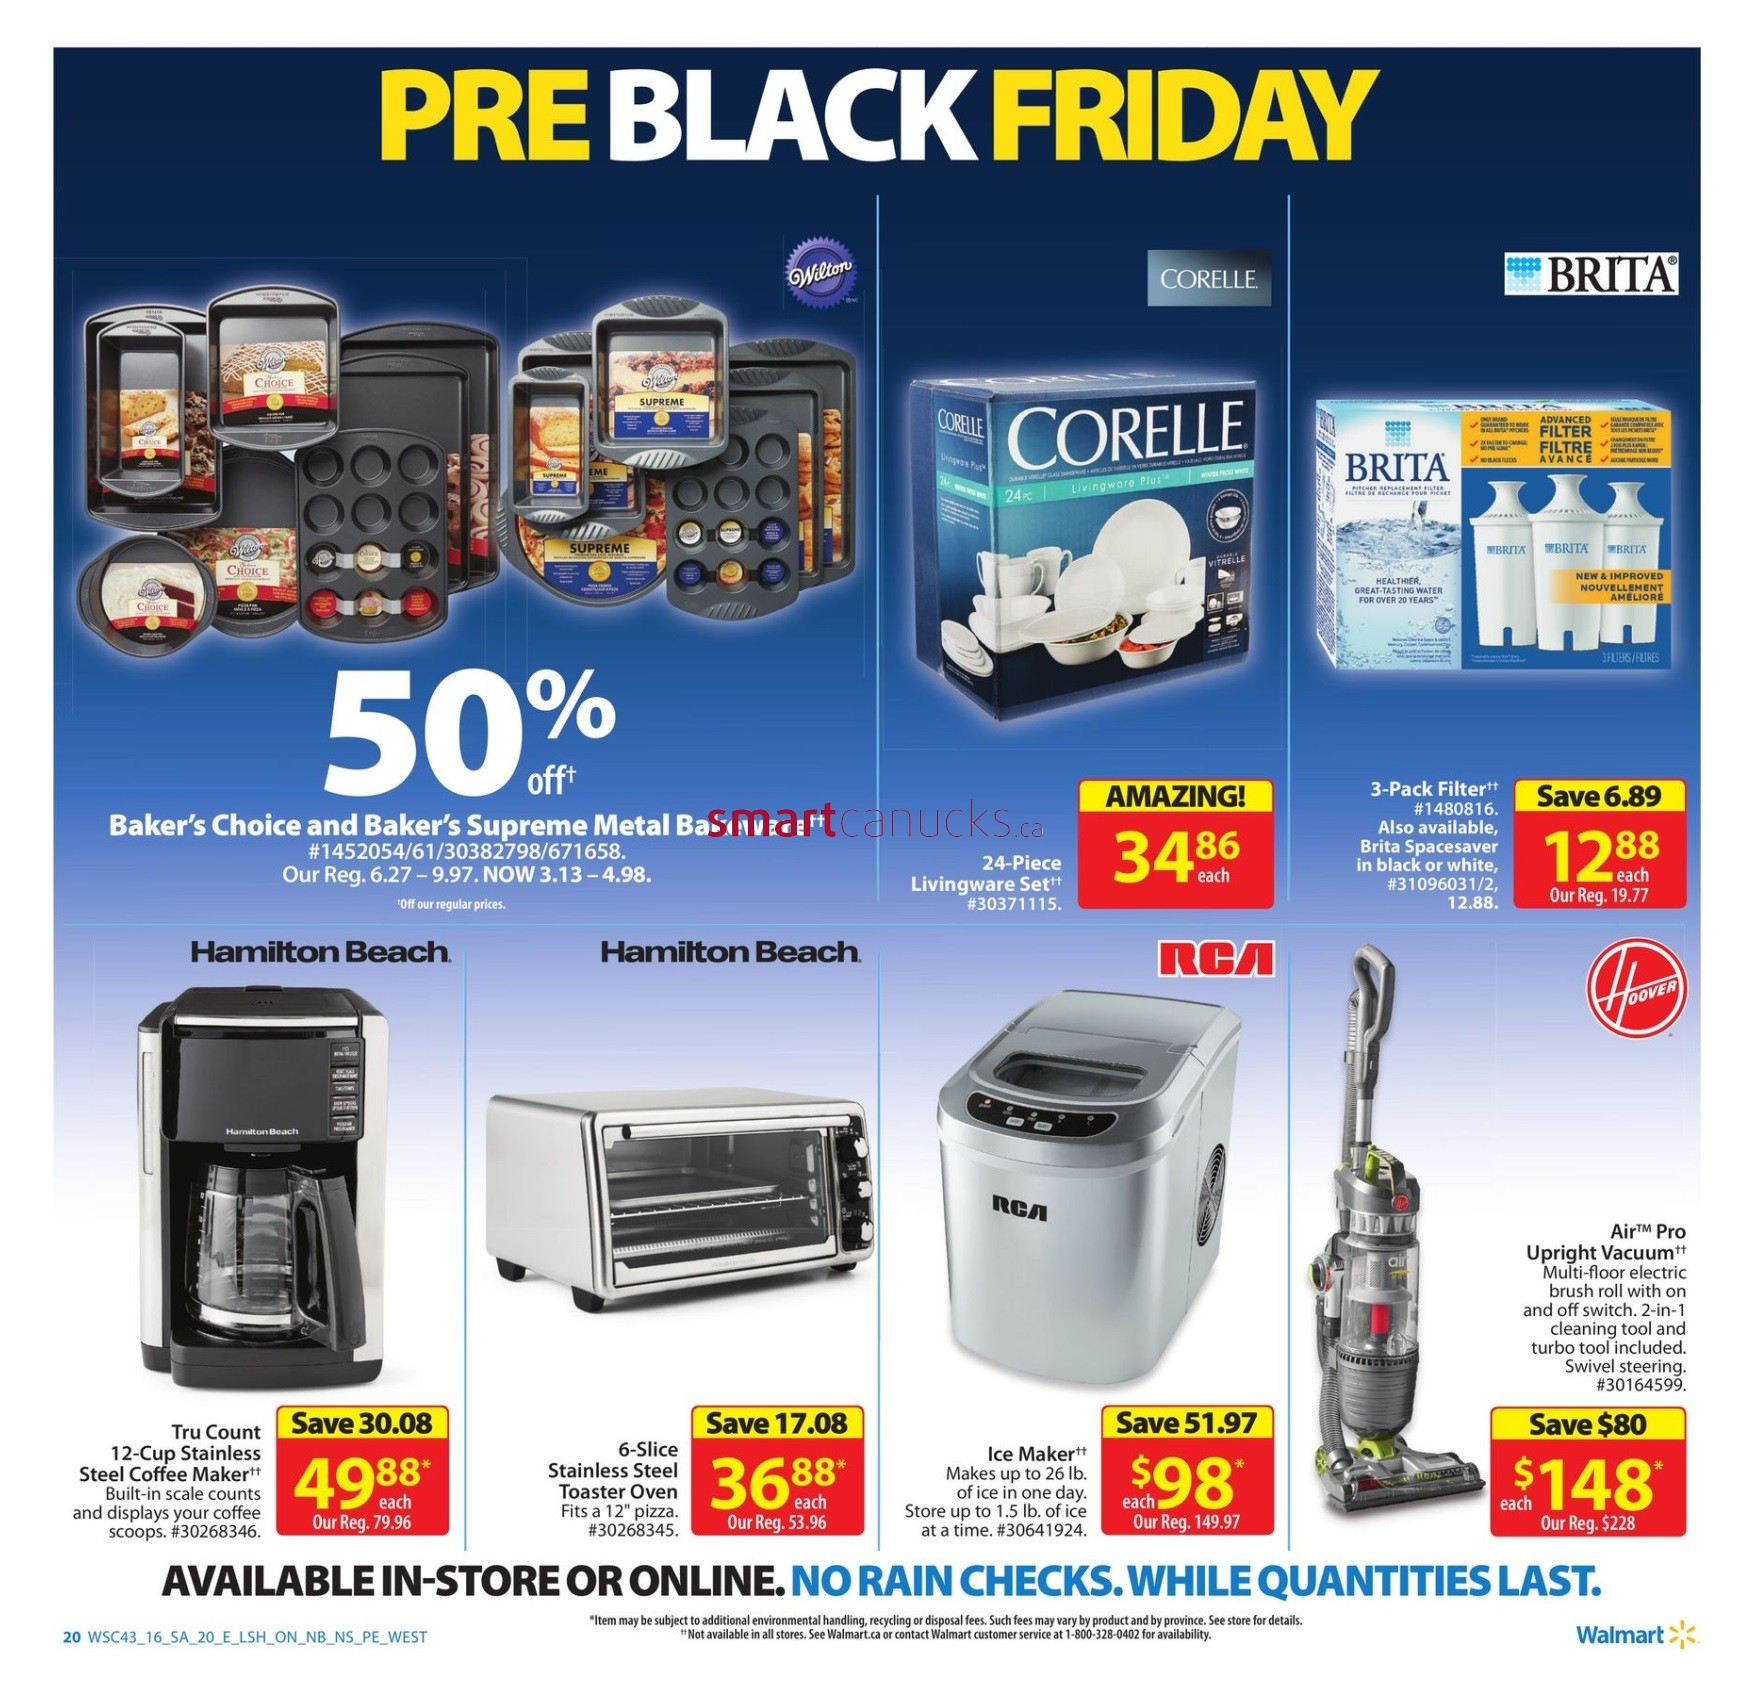 Walmart Canada Pre-Black Friday 2016 Flyer Sneak Peek November 17th – 23rd